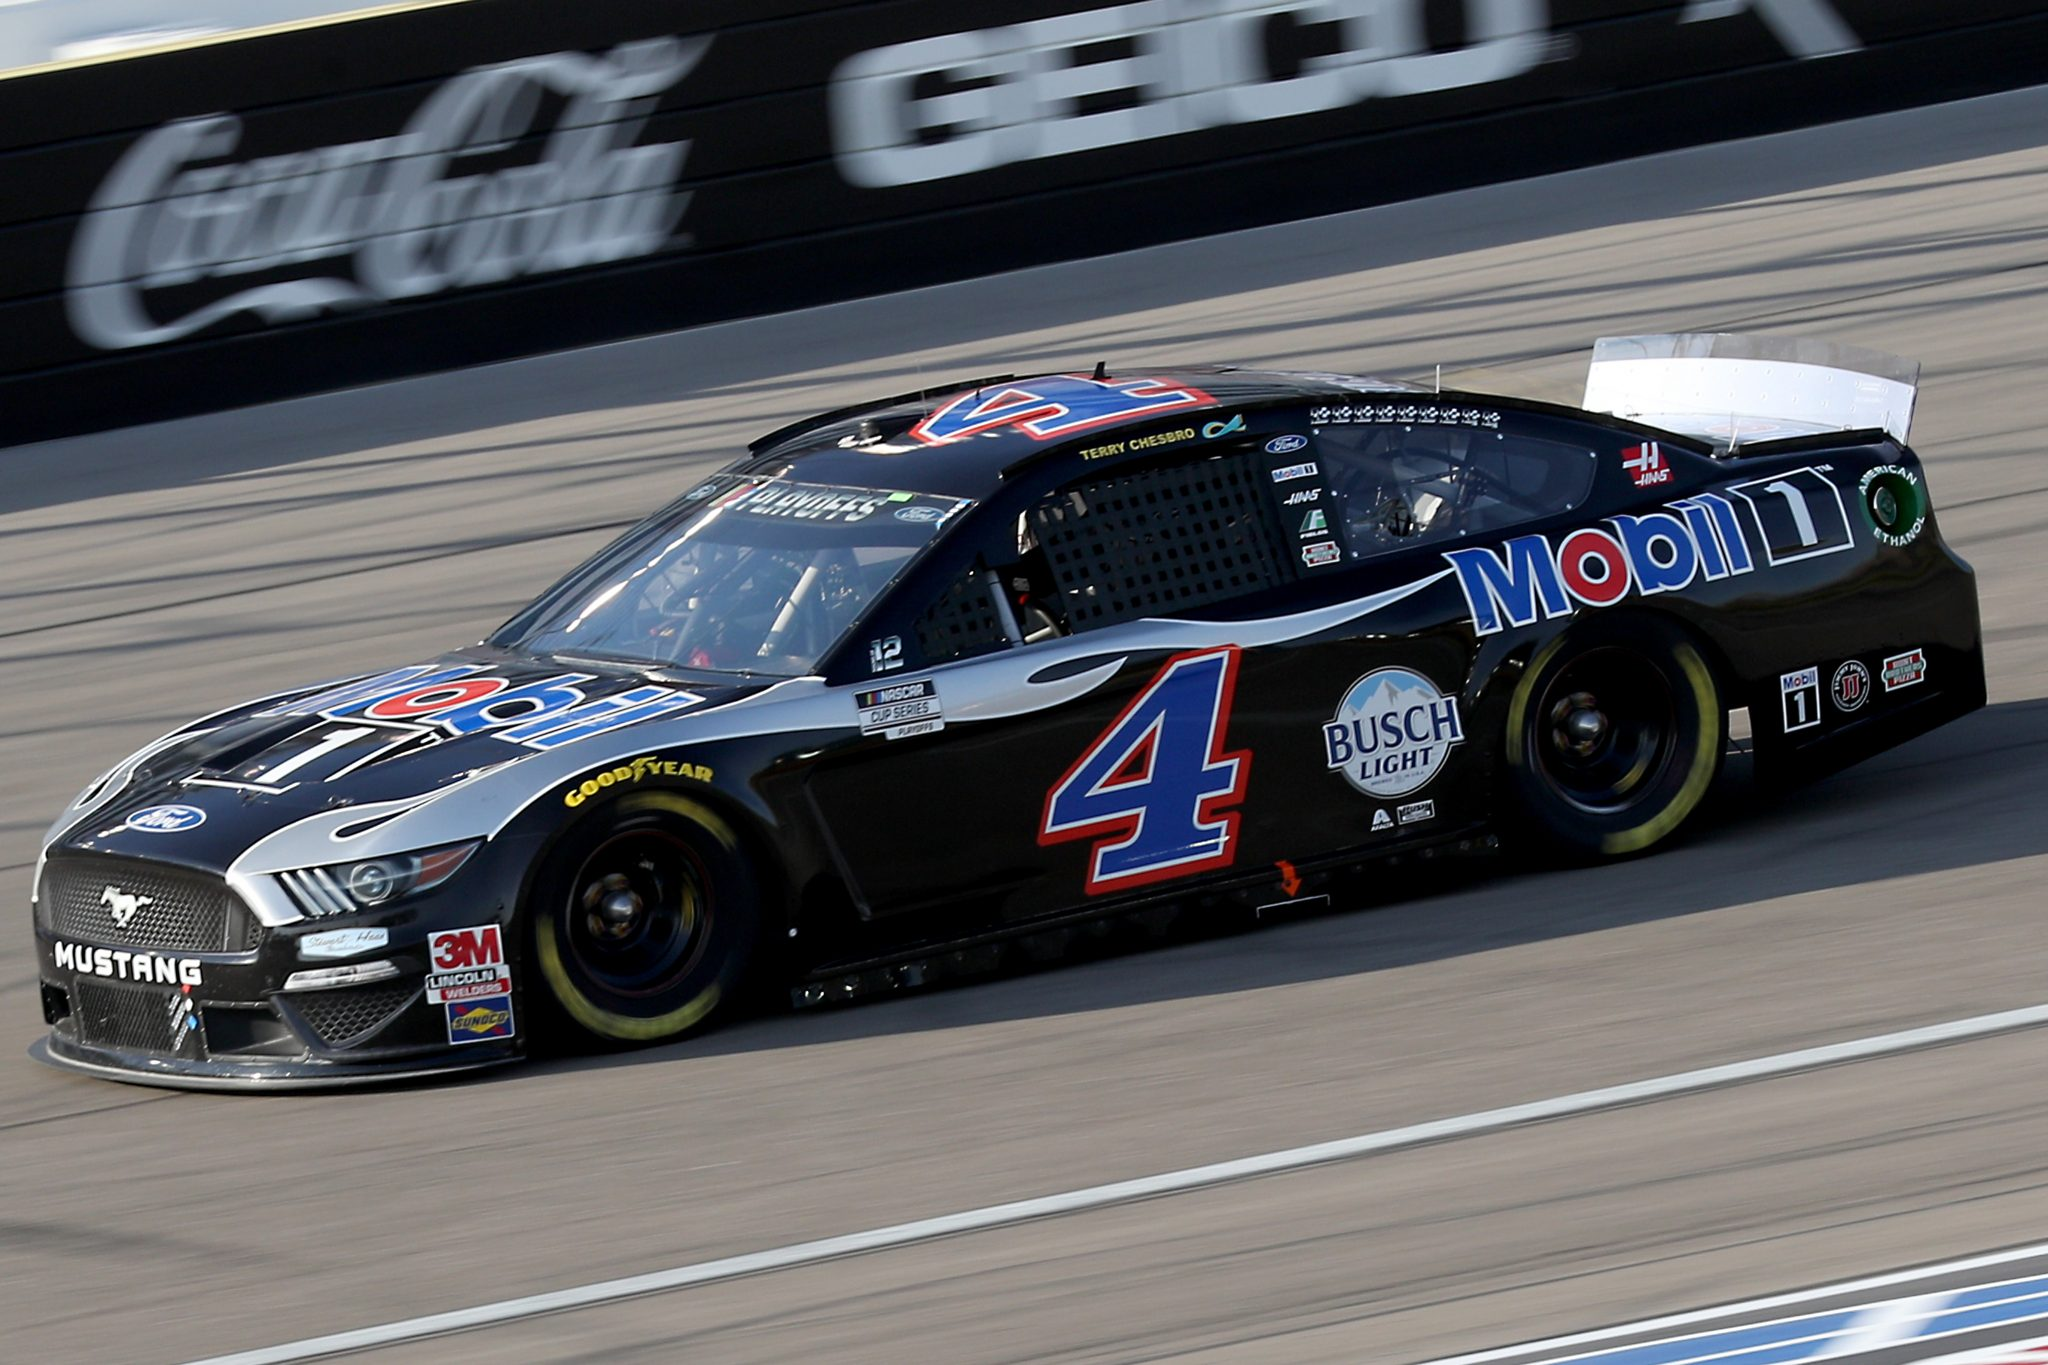 LAS VEGAS, NEVADA - SEPTEMBER 27: Kevin Harvick, driver of the #4 Mobil 1 Ford, drives during the NASCAR Cup Series South Point 400 at Las Vegas Motor Speedway on September 27, 2020 in Las Vegas, Nevada. (Photo by Chris Graythen/Getty Images) | Getty Images